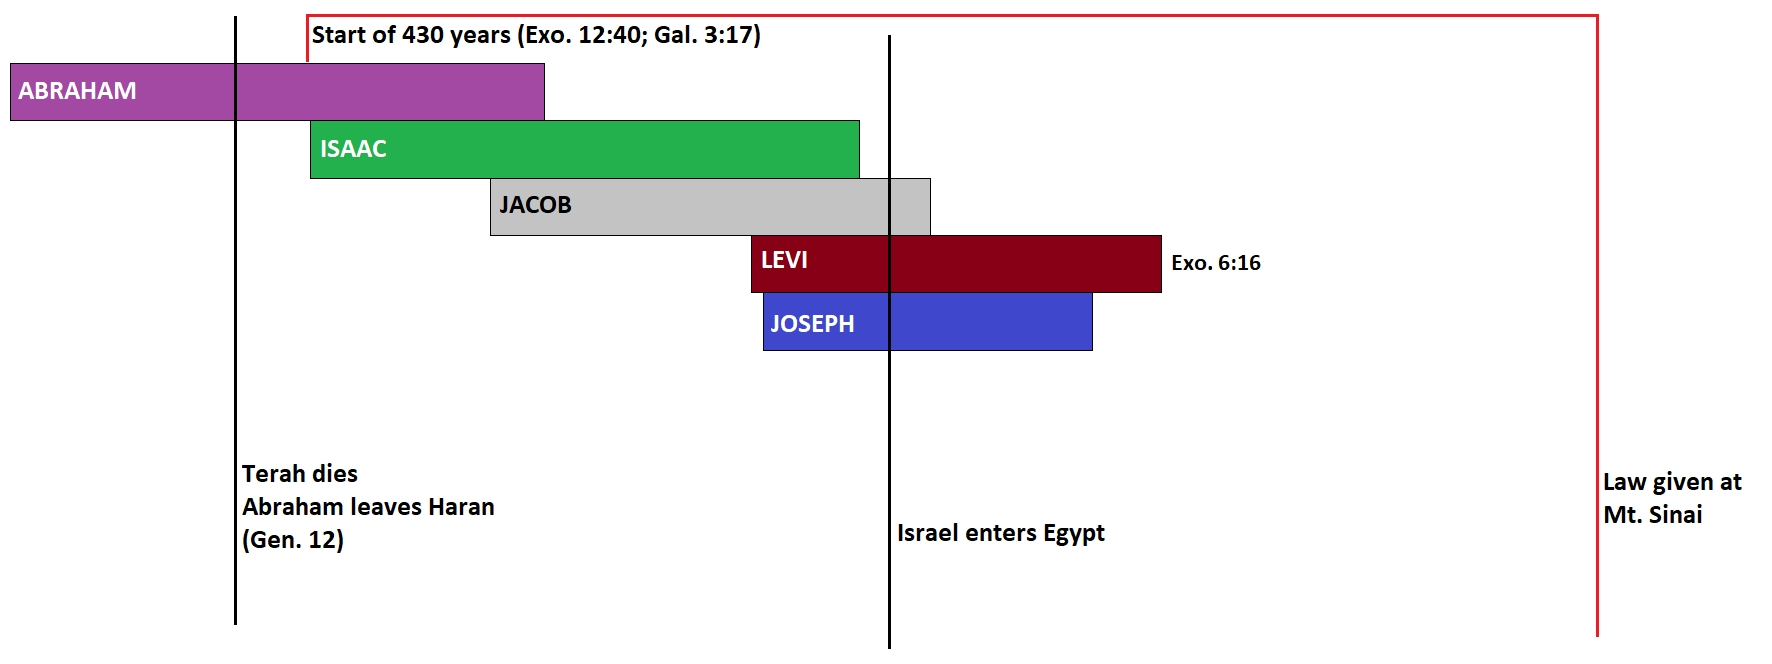 Chronology Of The Bible - Timing The Exodus And The Hebrew